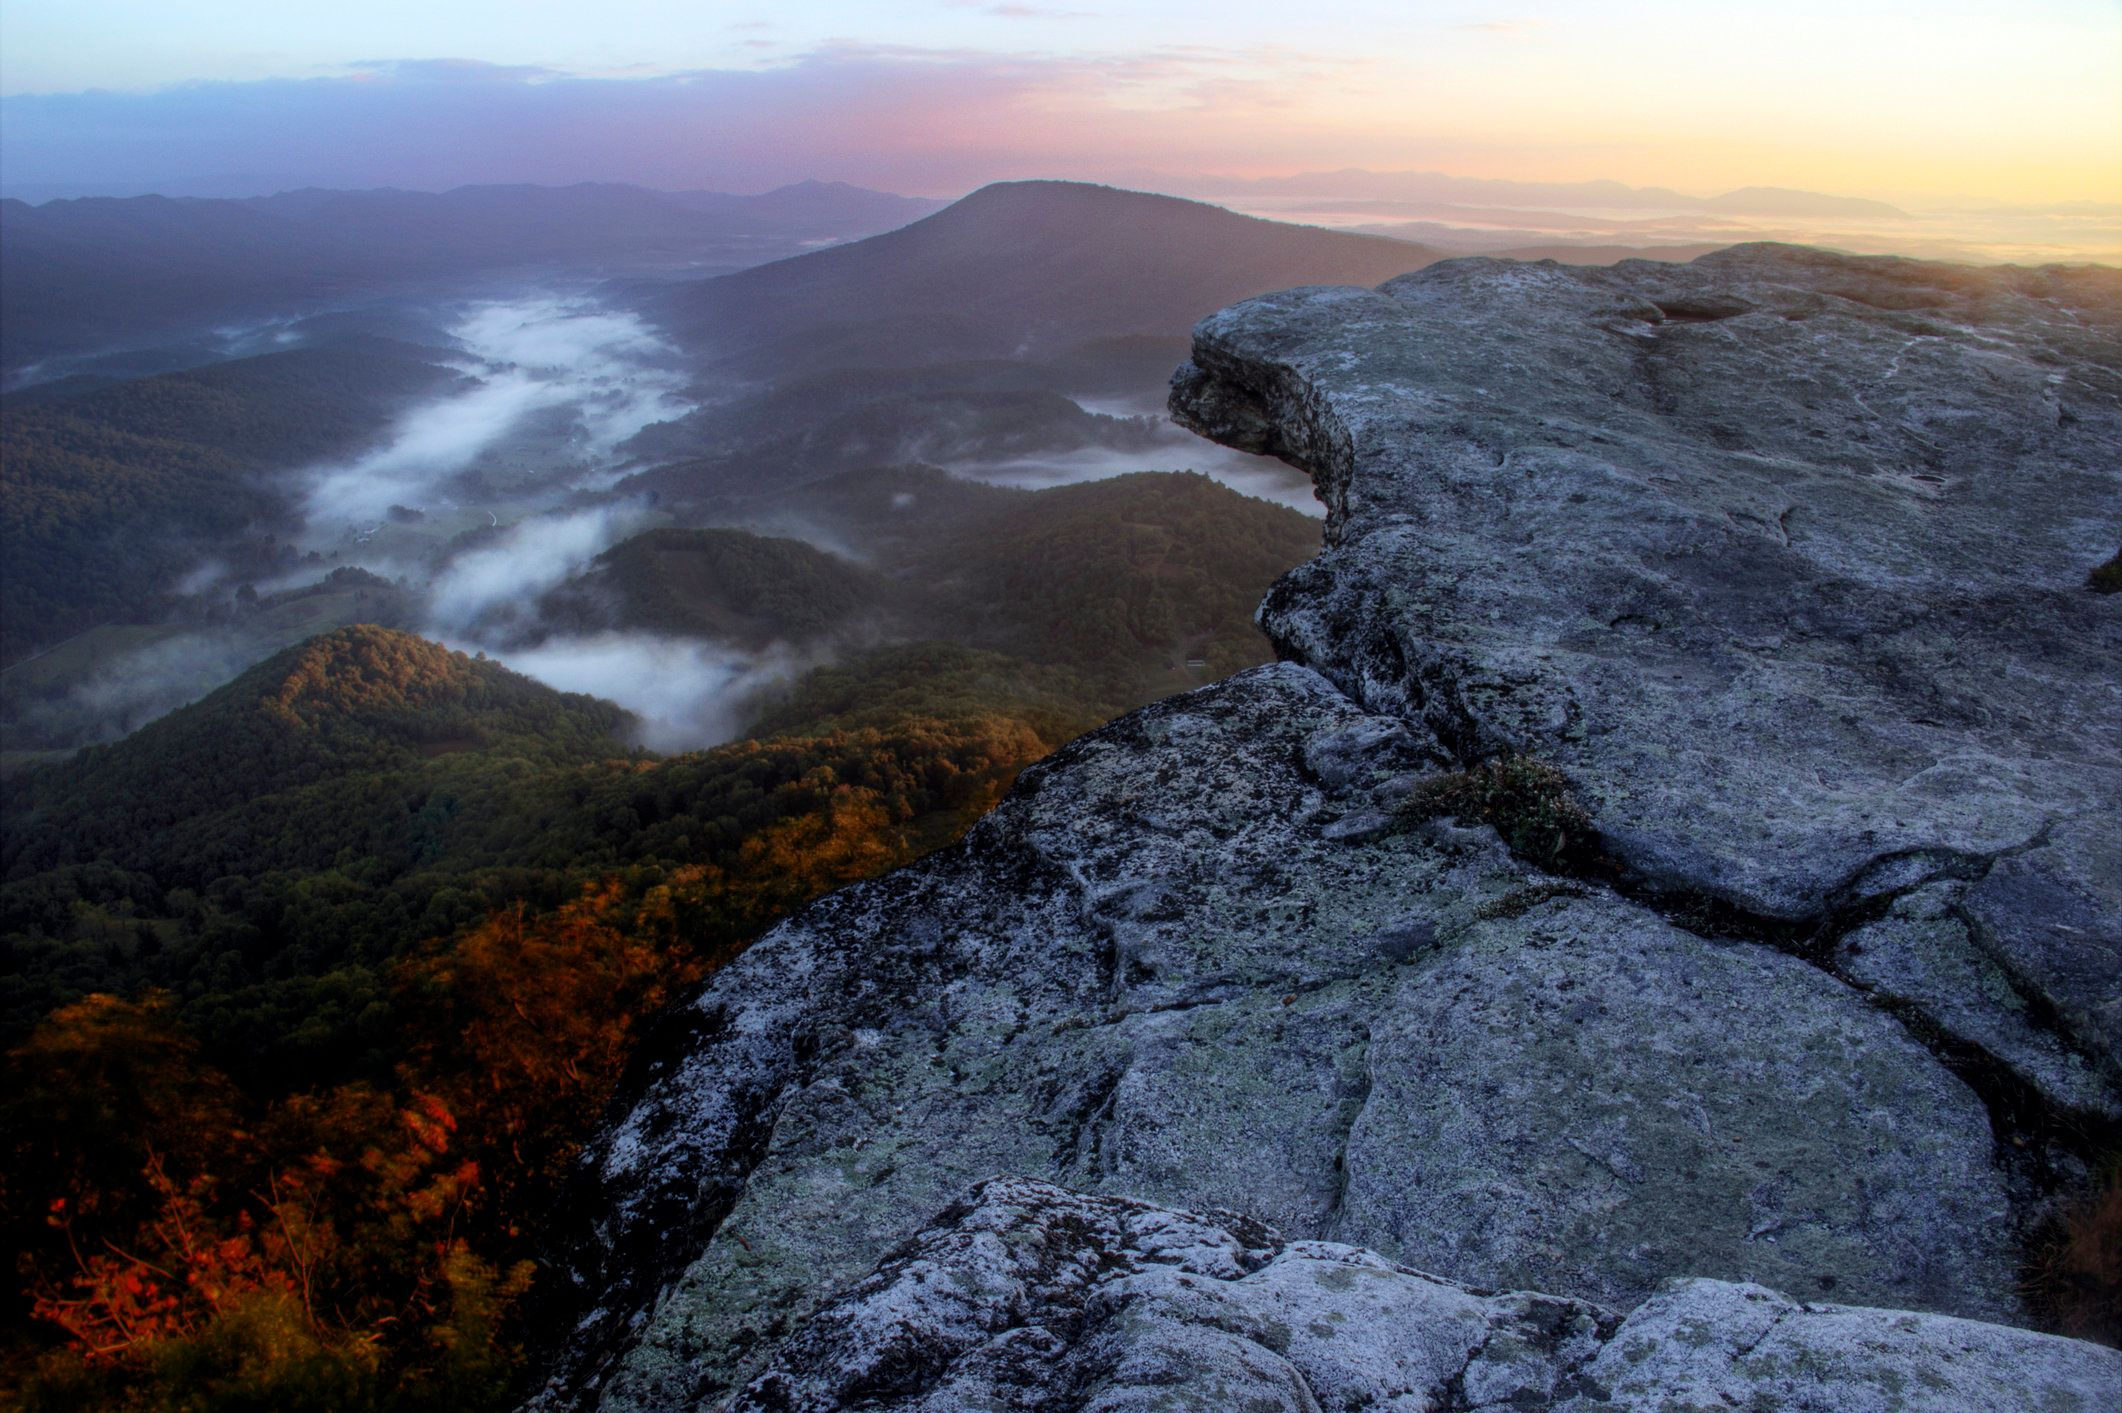 Fall sunrise from McAfee Knob on the appalachian trail in Virginia.